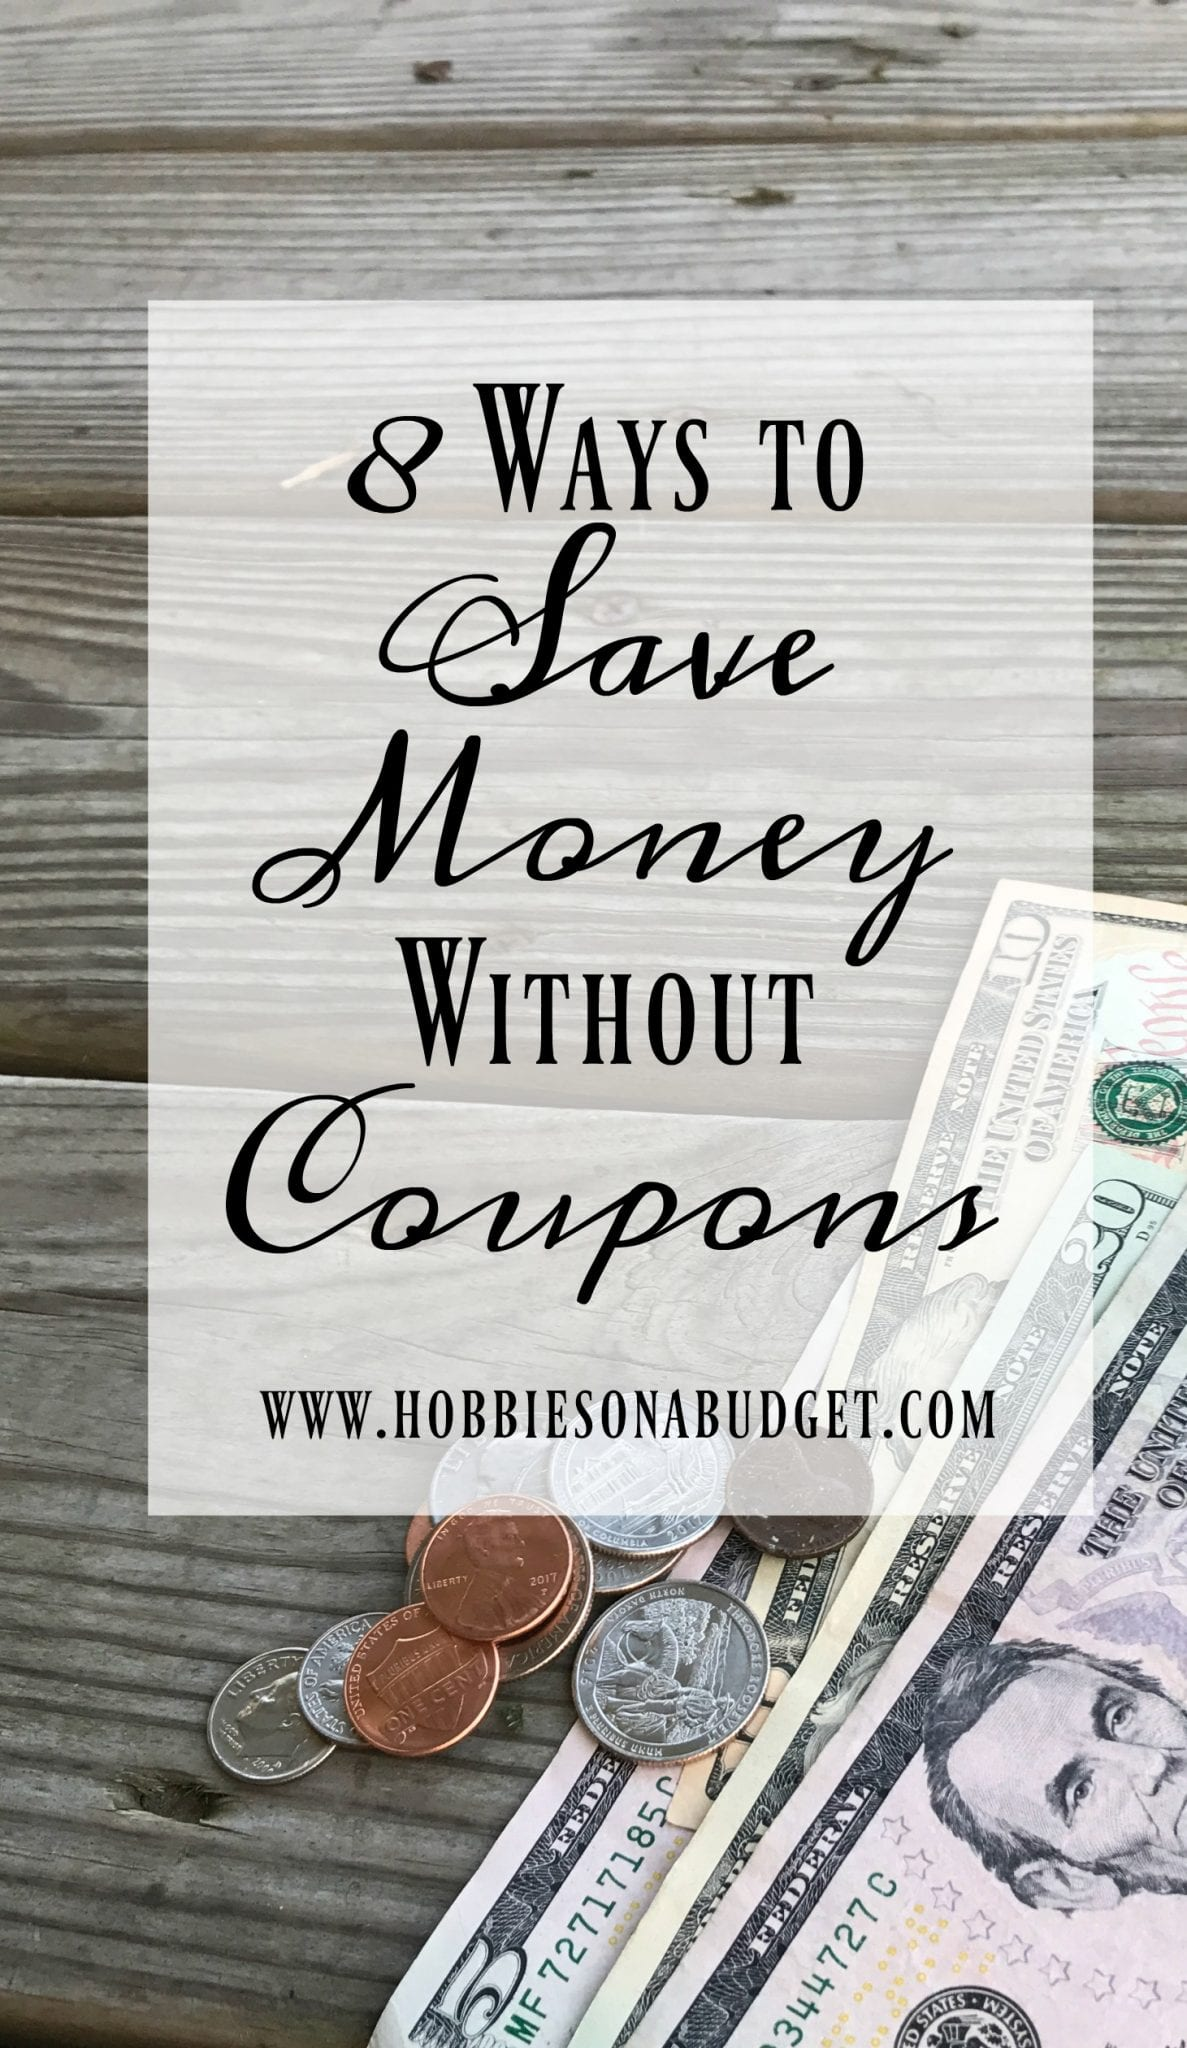 8 ways to save money without coupons